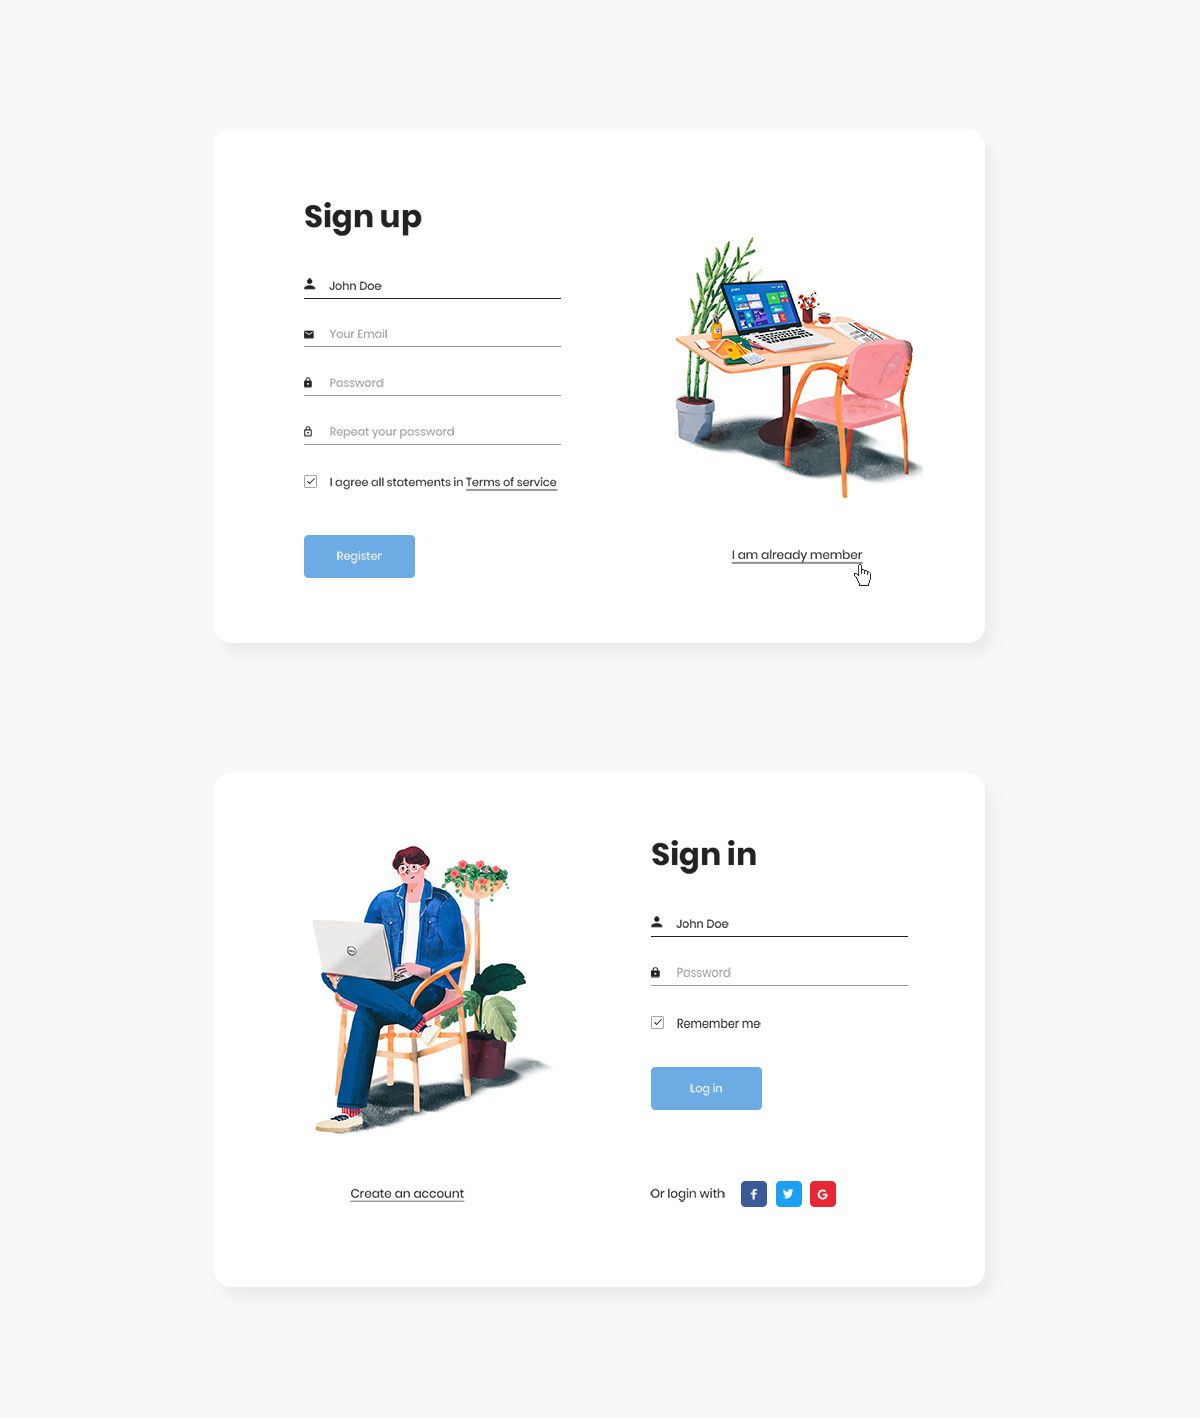 007 Fascinating New User Setup Form Template Photo  Customer Word Account Vendor ExcelFull